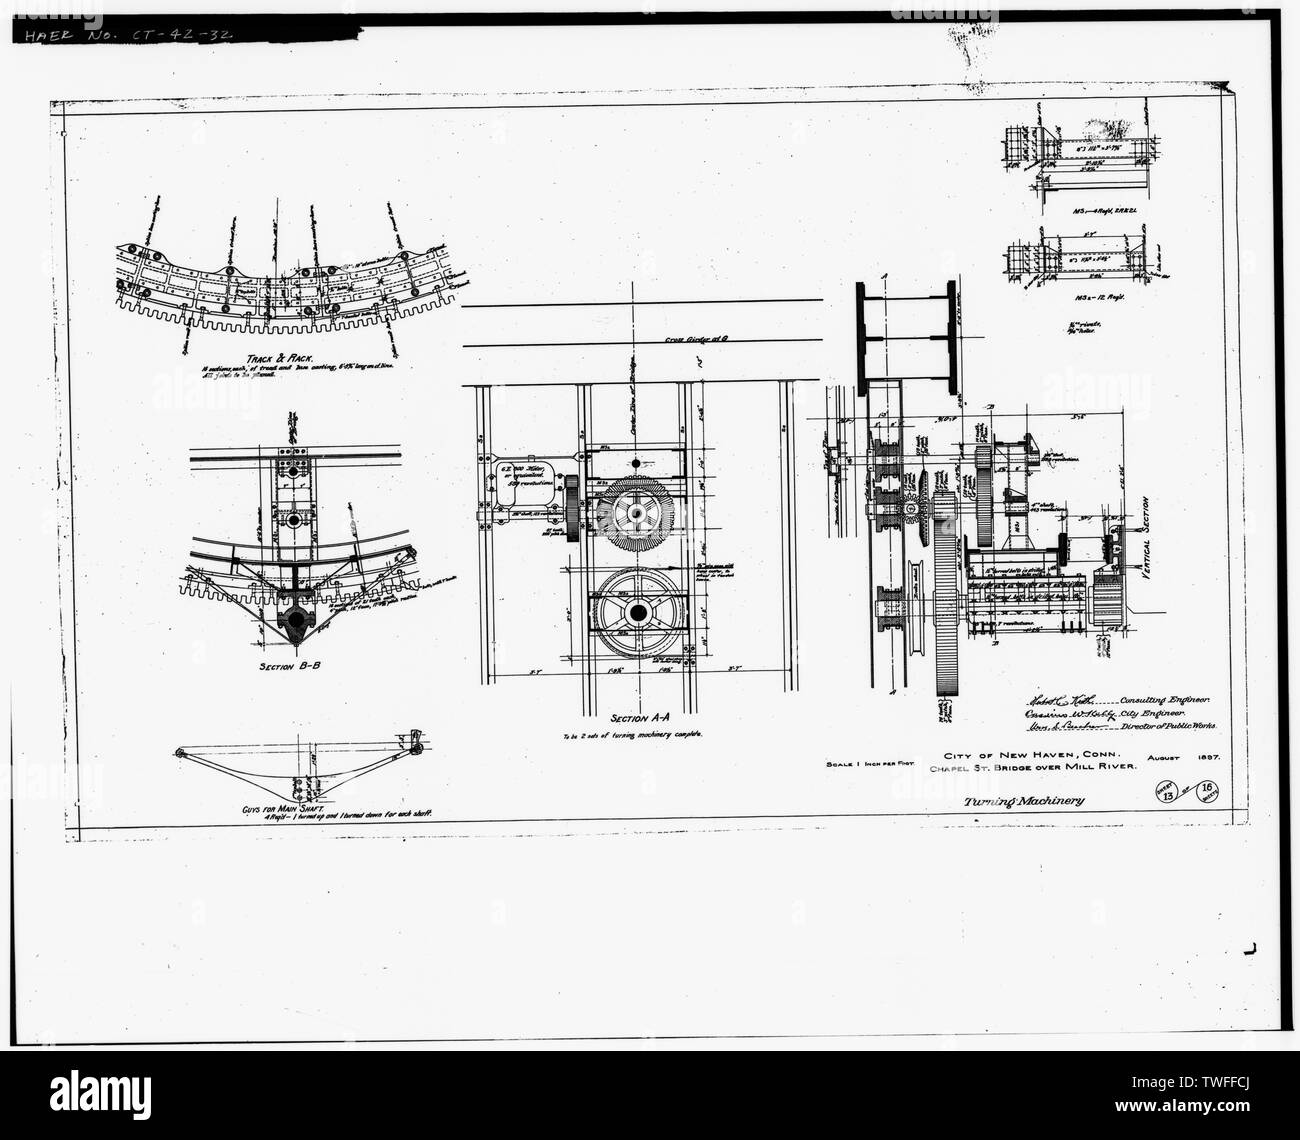 PLAN SHEET - TURNING MACHINERY (1897) - Chapel Street Swing Bridge, Spanning Mill River on Chapel Street, New Haven, New Haven County, CT - Stock Image